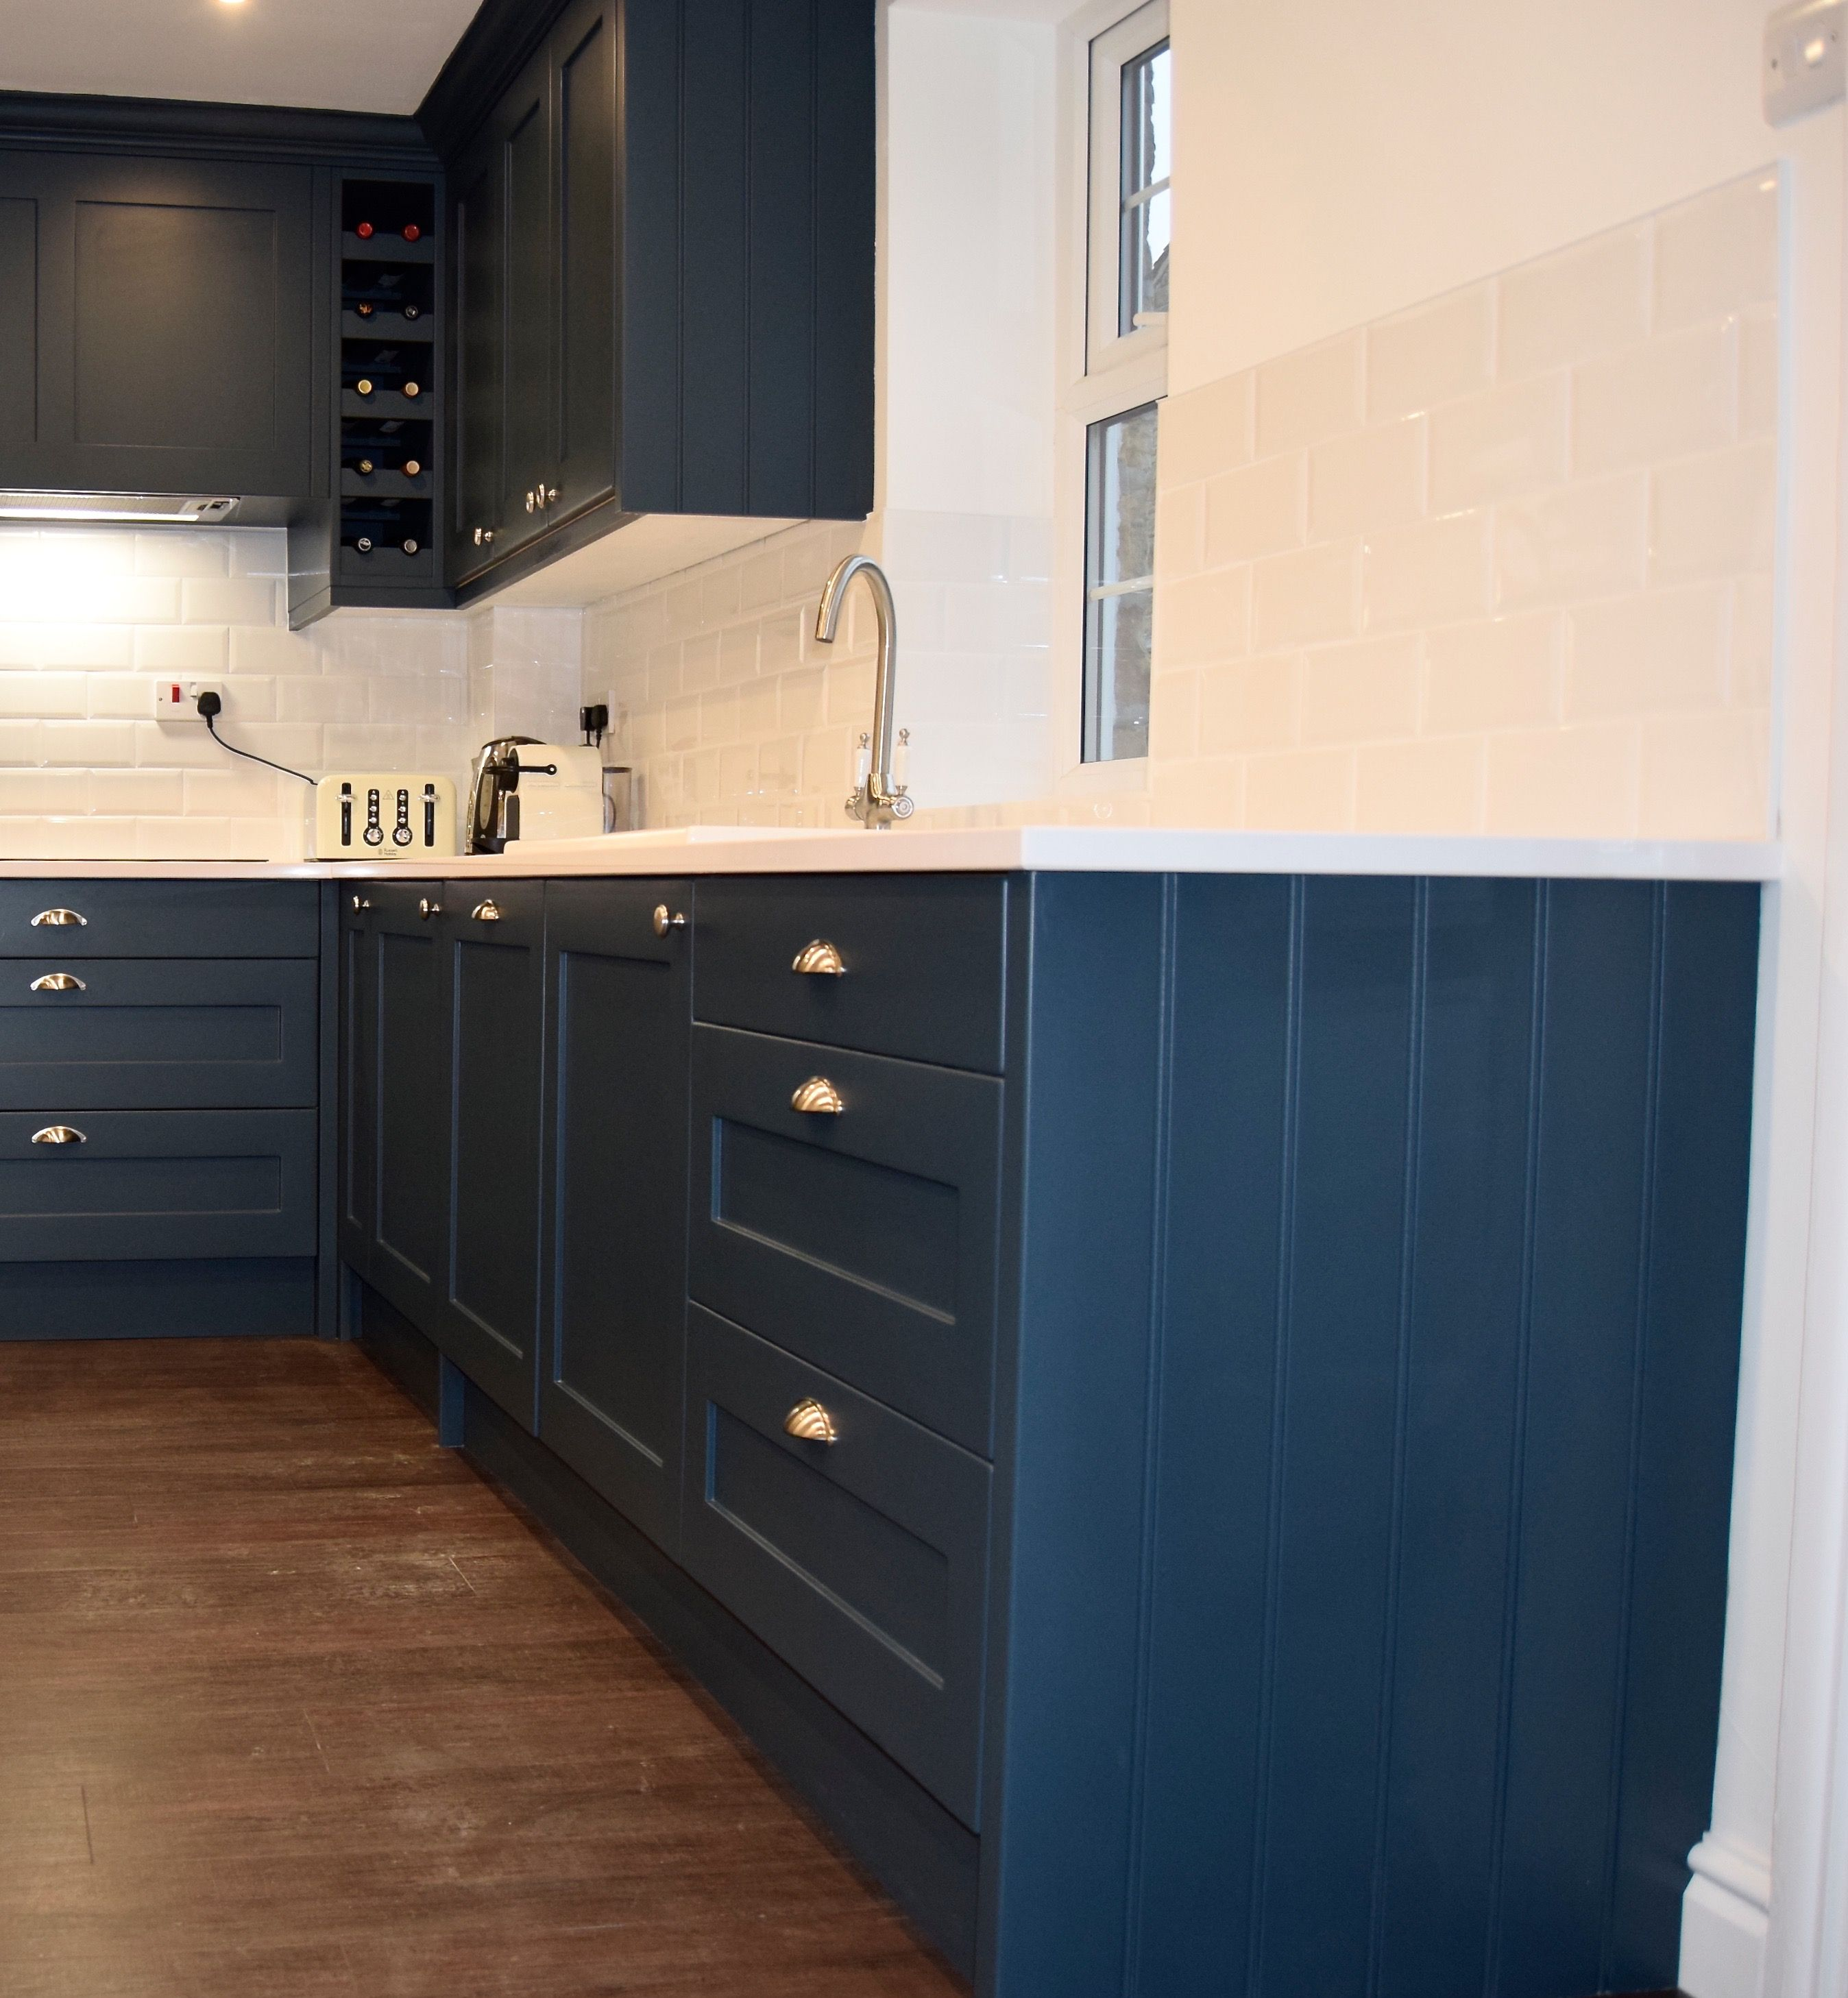 Bespoke Handmade Kitchens By Qualified Cabinet Maker Gill Martinez Painted In FB Hague